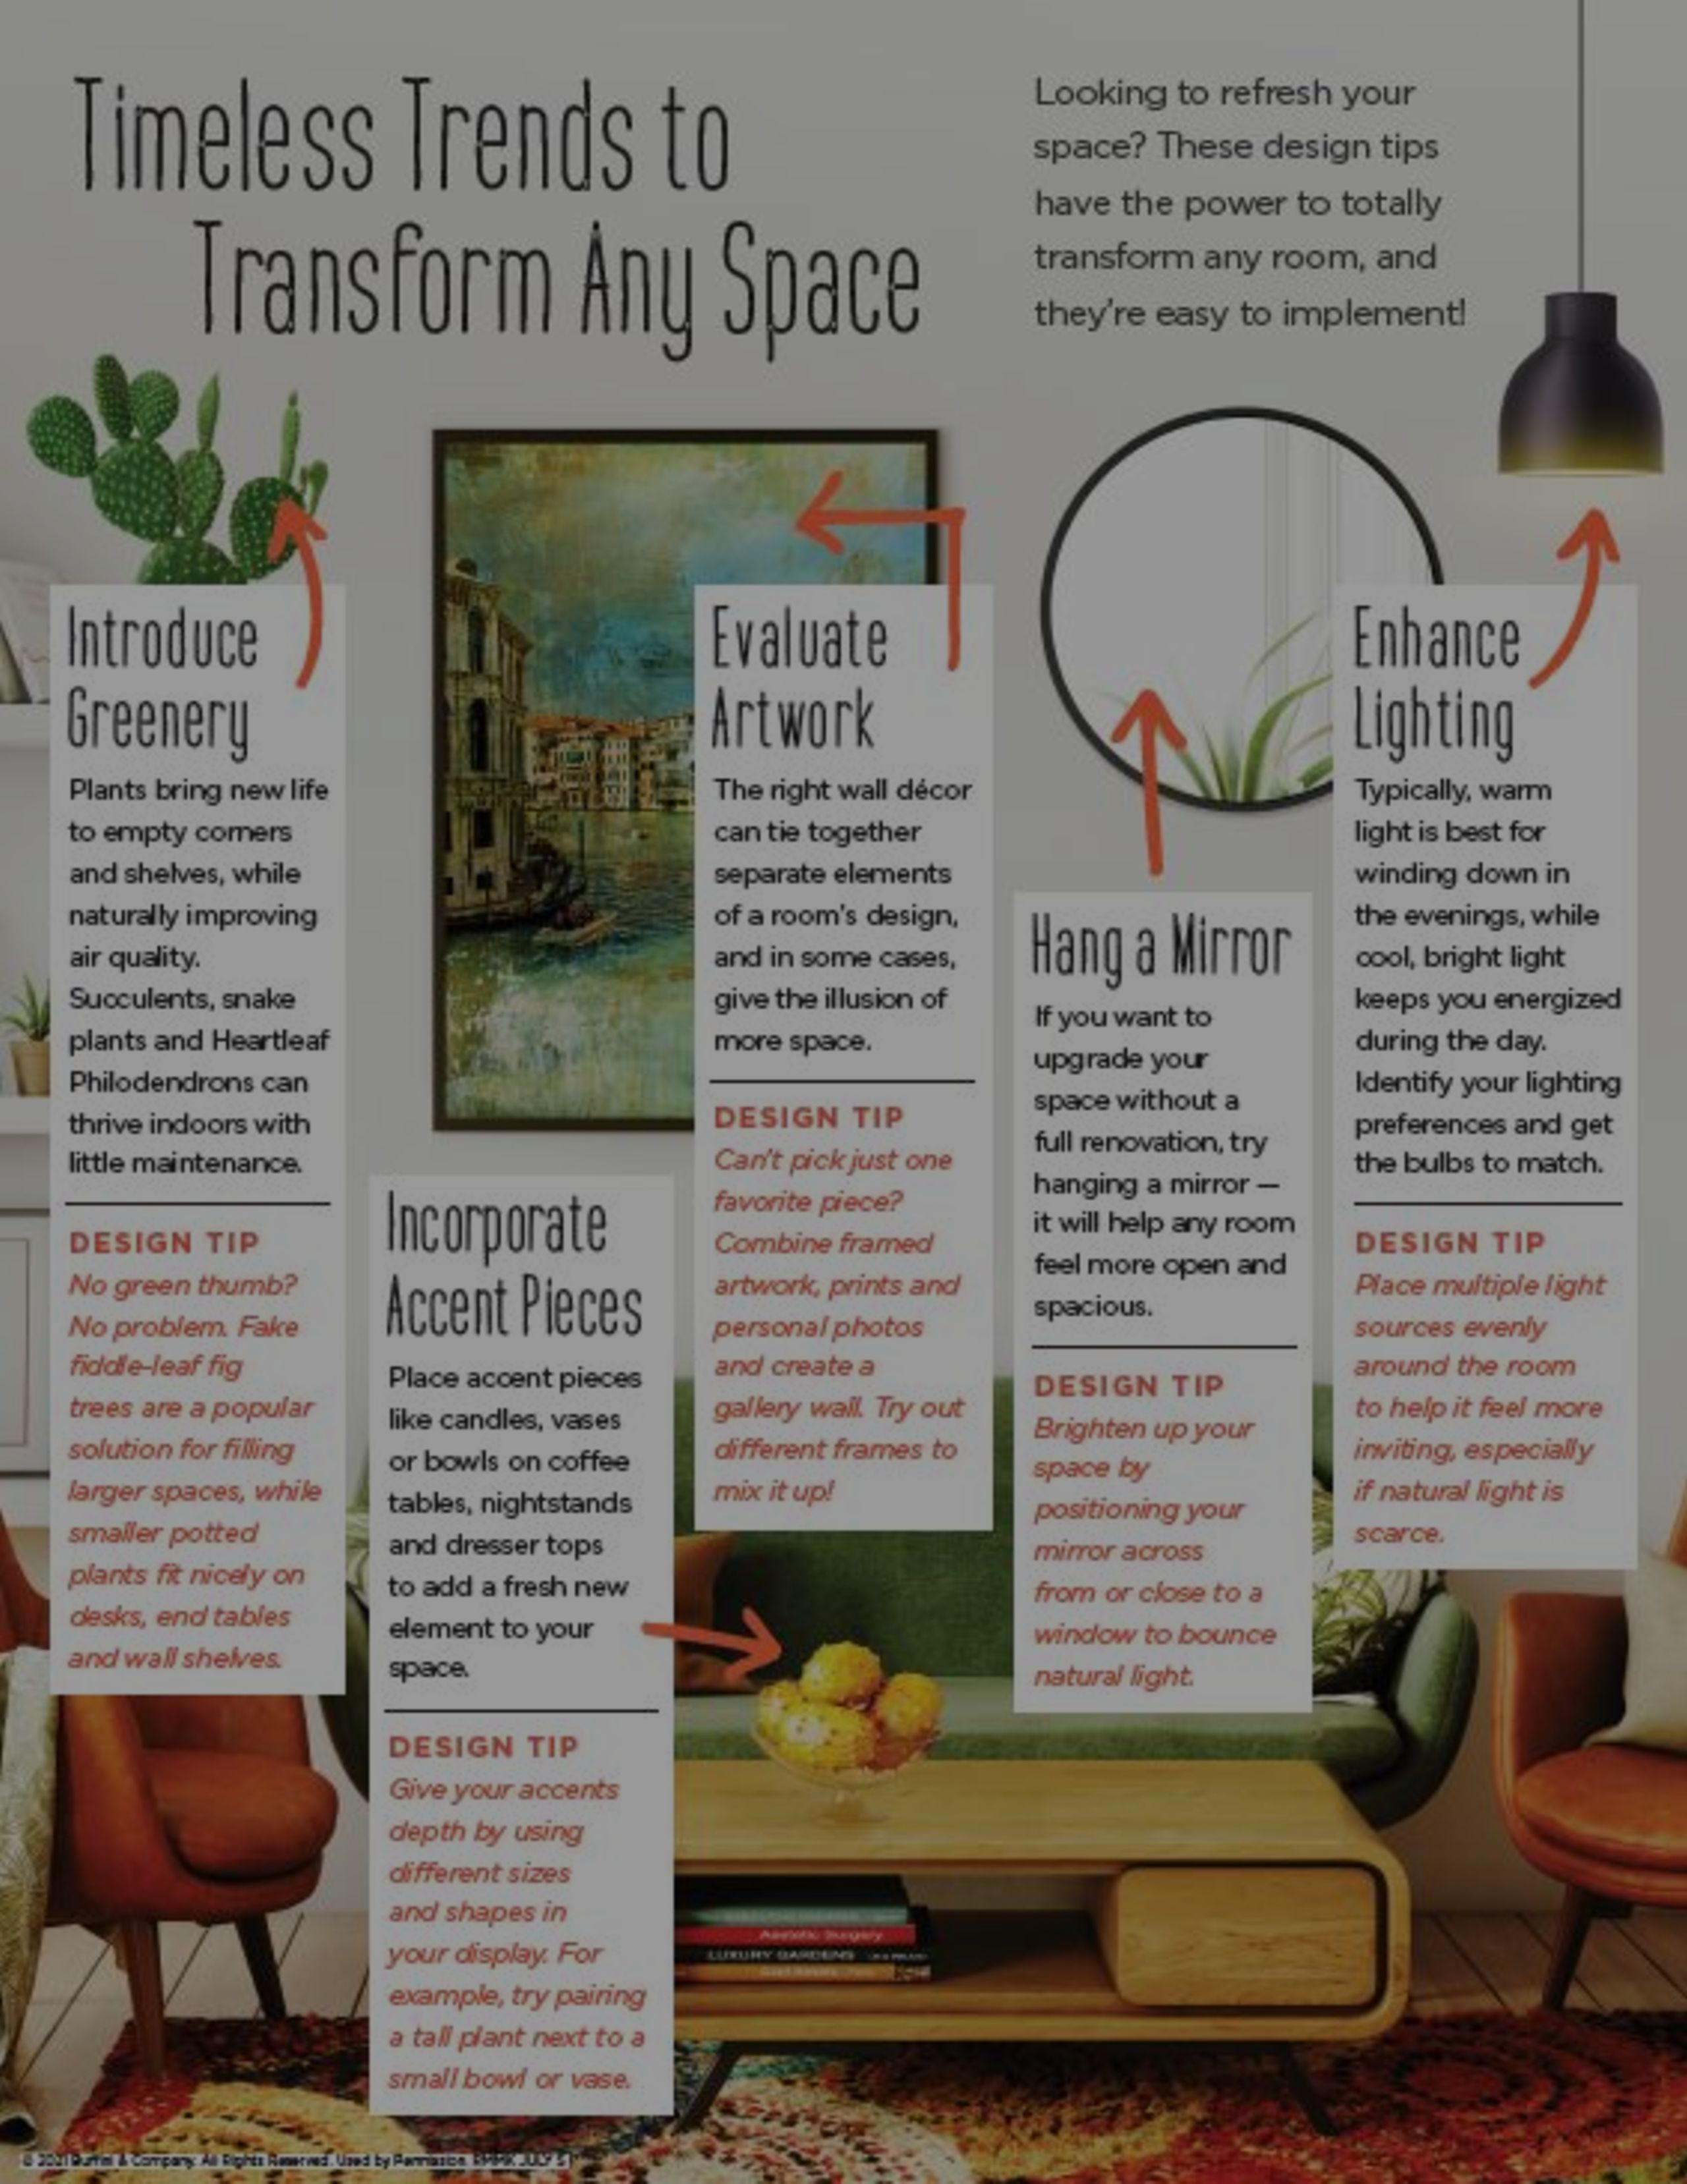 Timeless Trends for Any Space